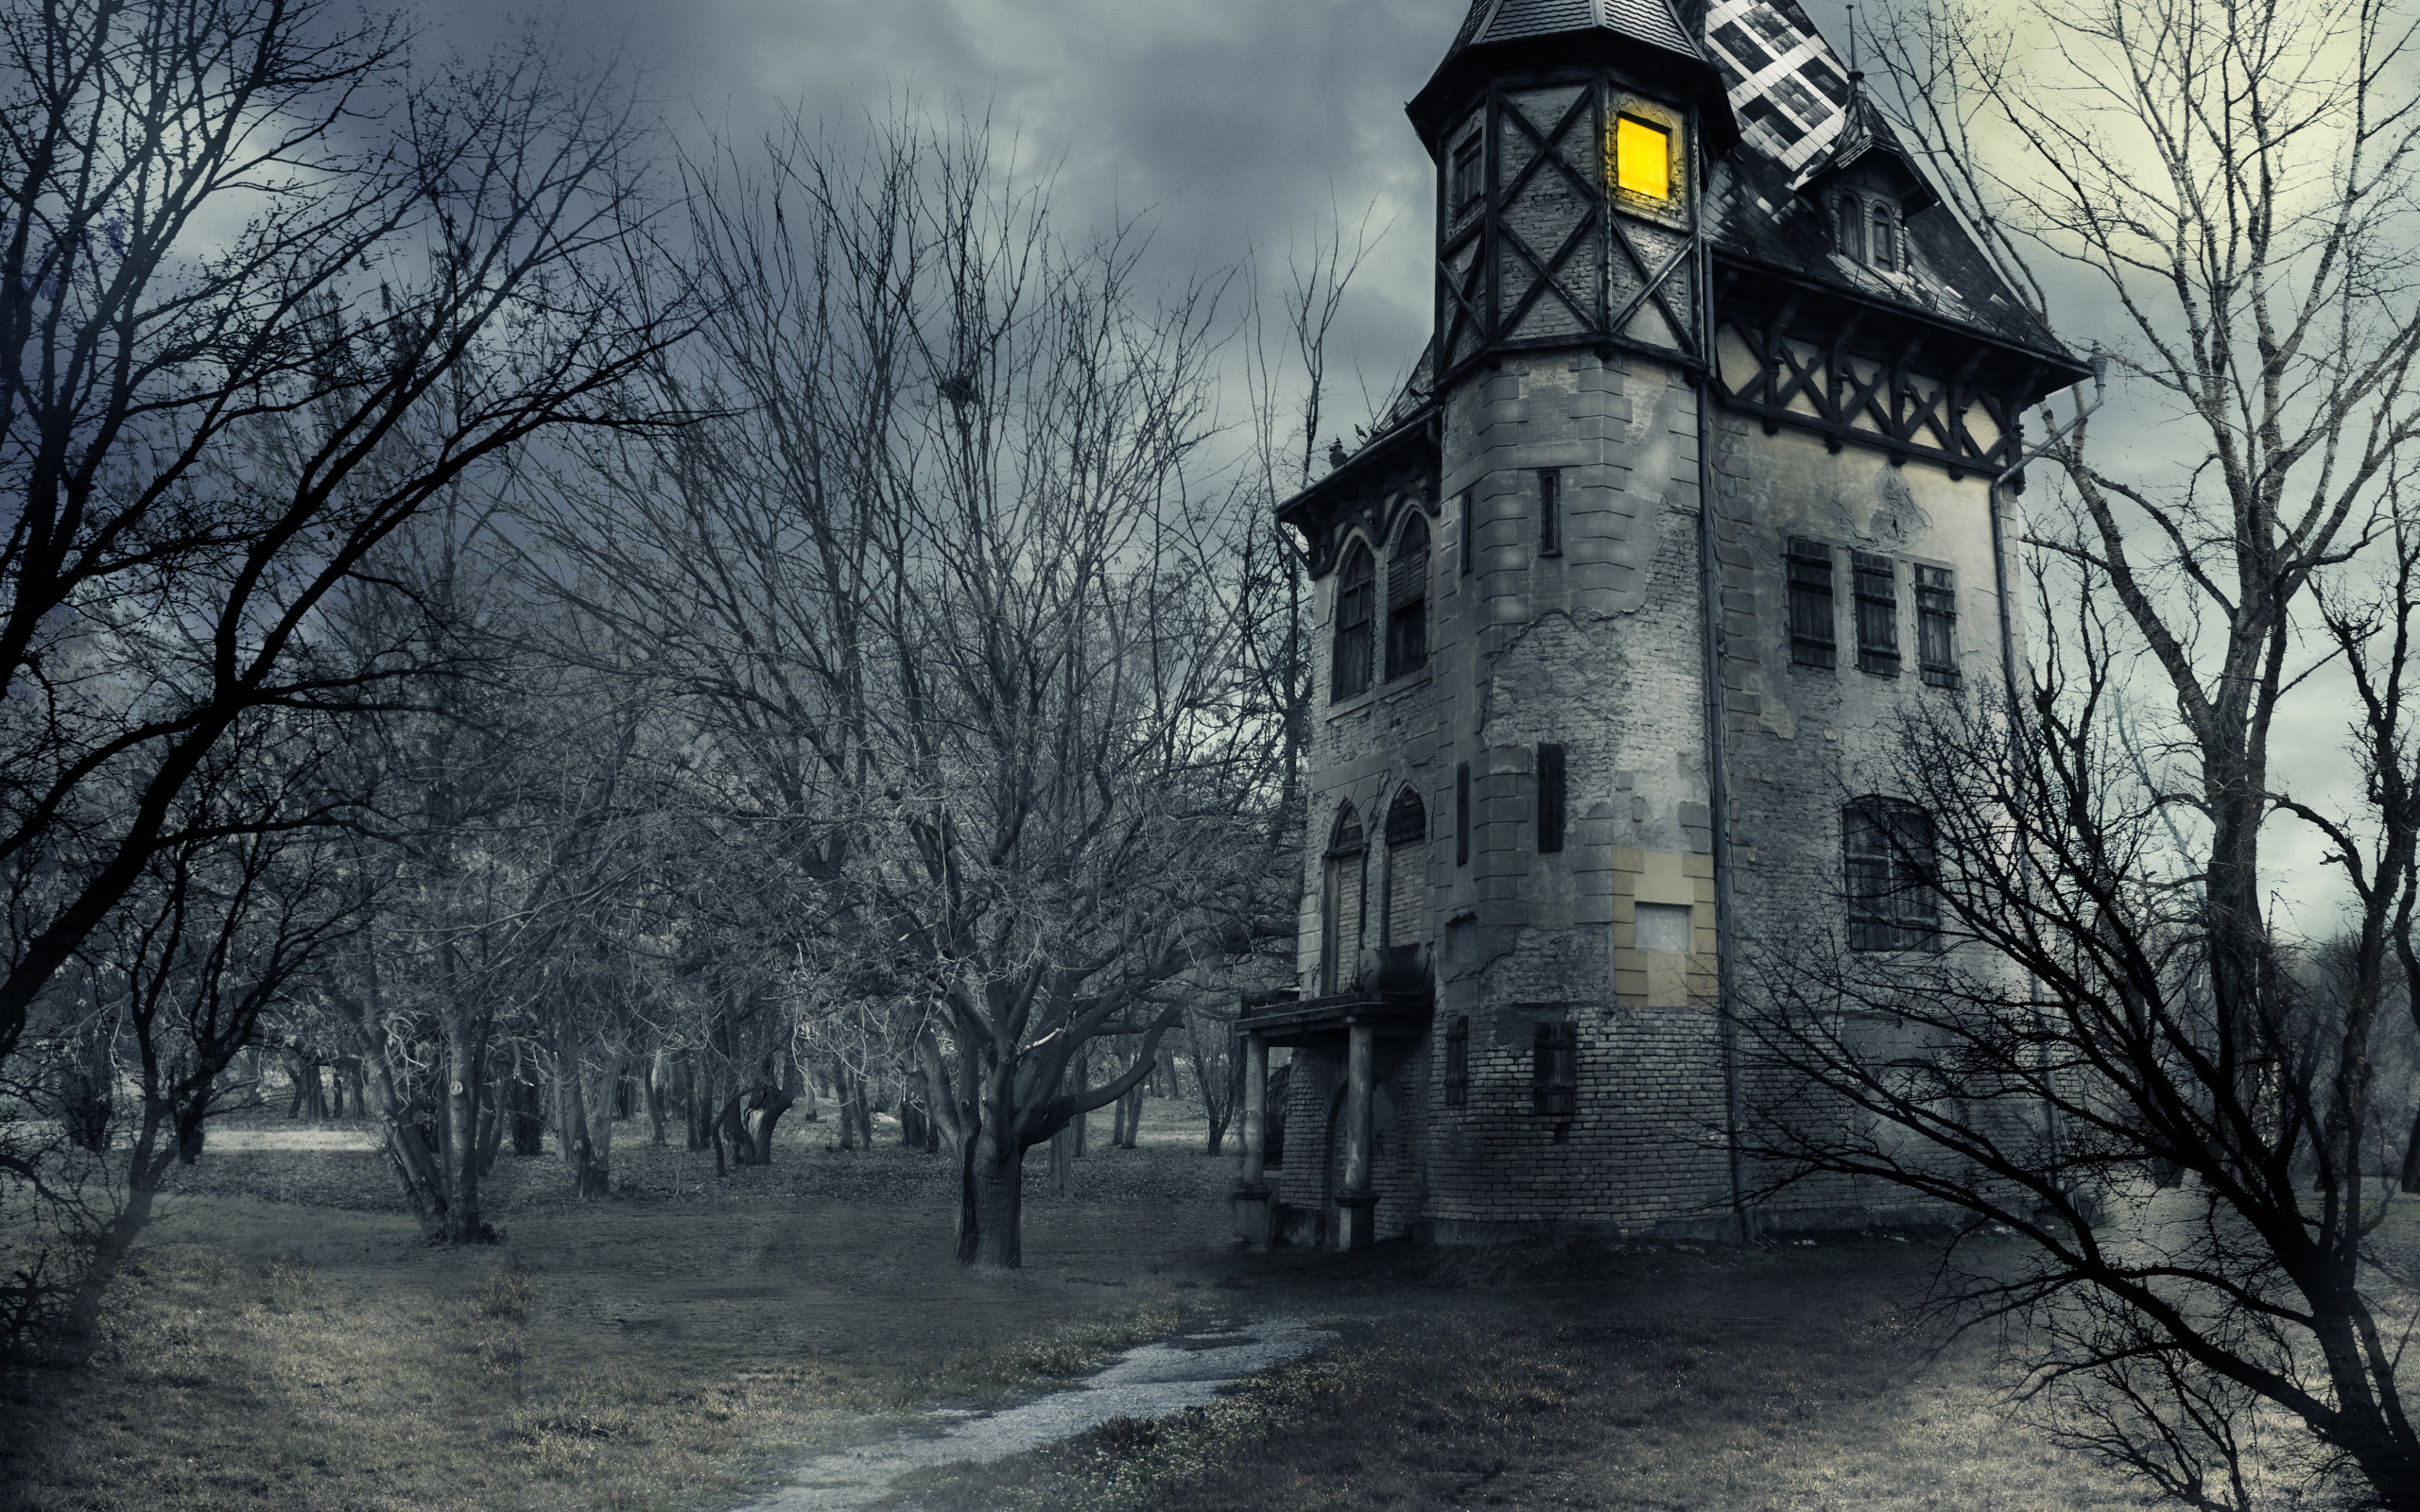 Halloween Haunted House Wallpaper (62+ images)